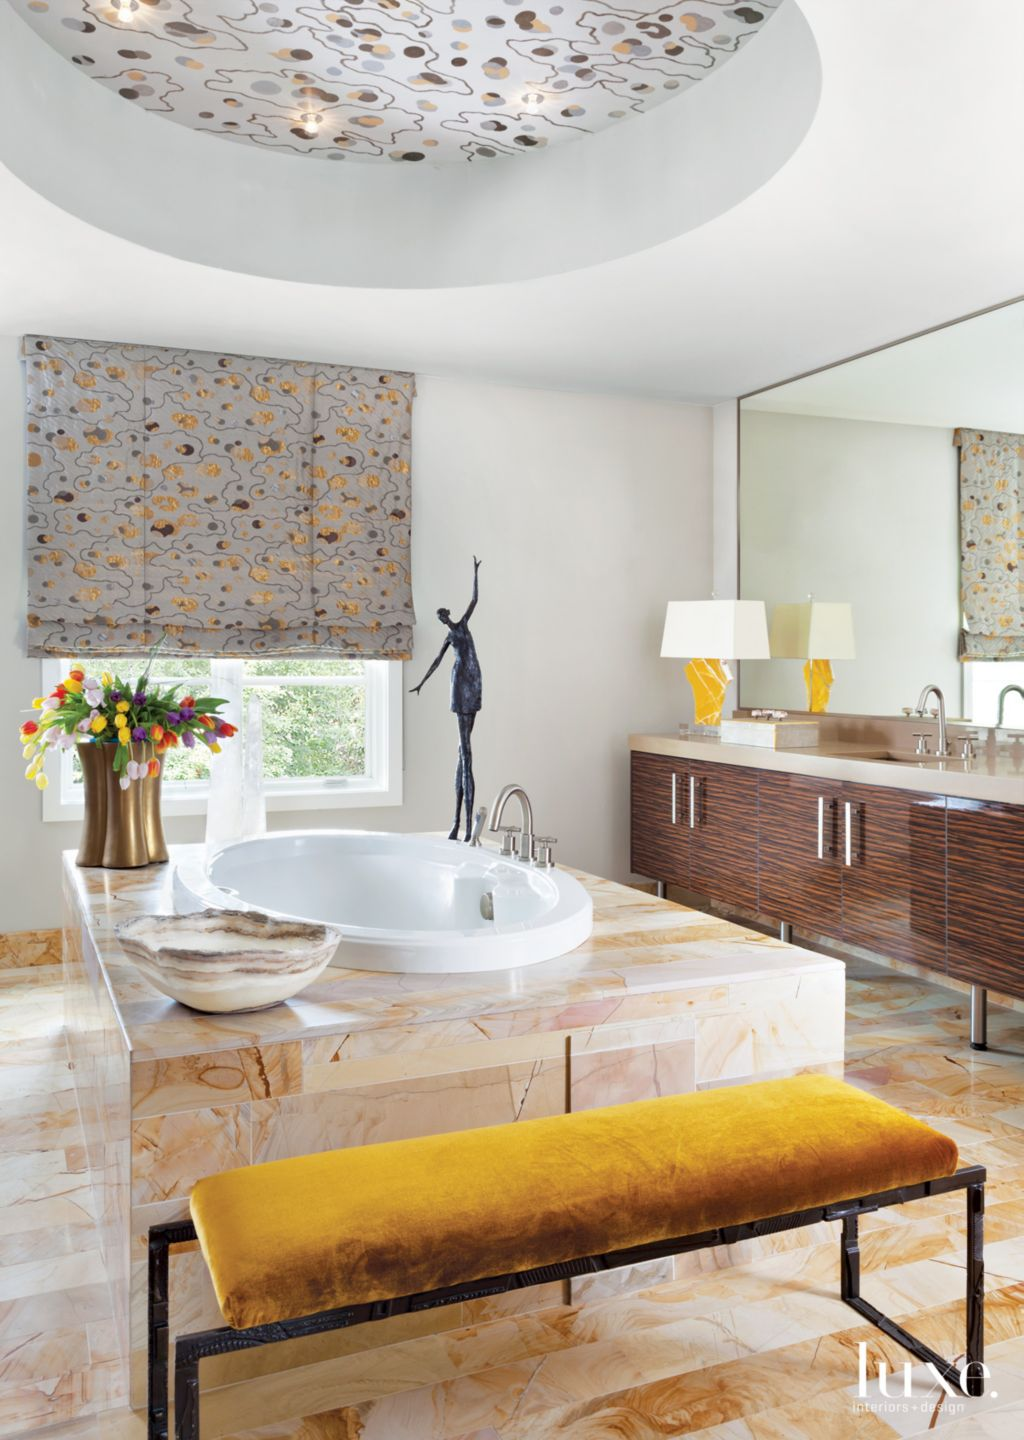 Eclectic White Master Bathroom with Gold-Toned Marble Accents